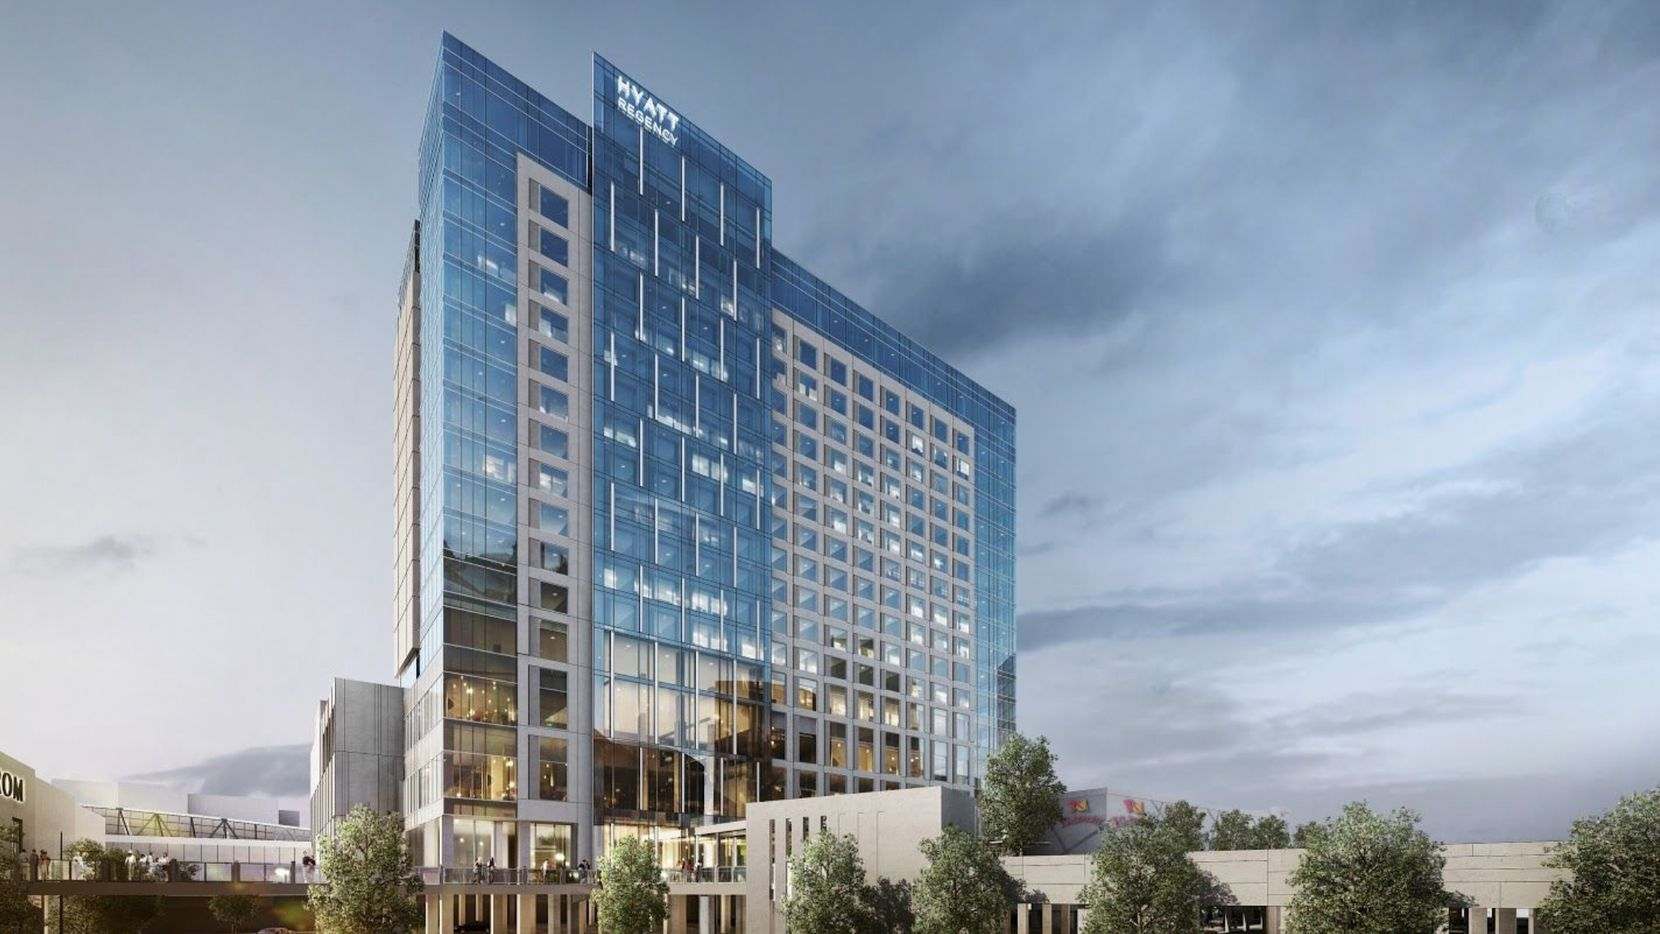 The 18-story Hyatt Regency Stonebriar will have more than 300 rooms.